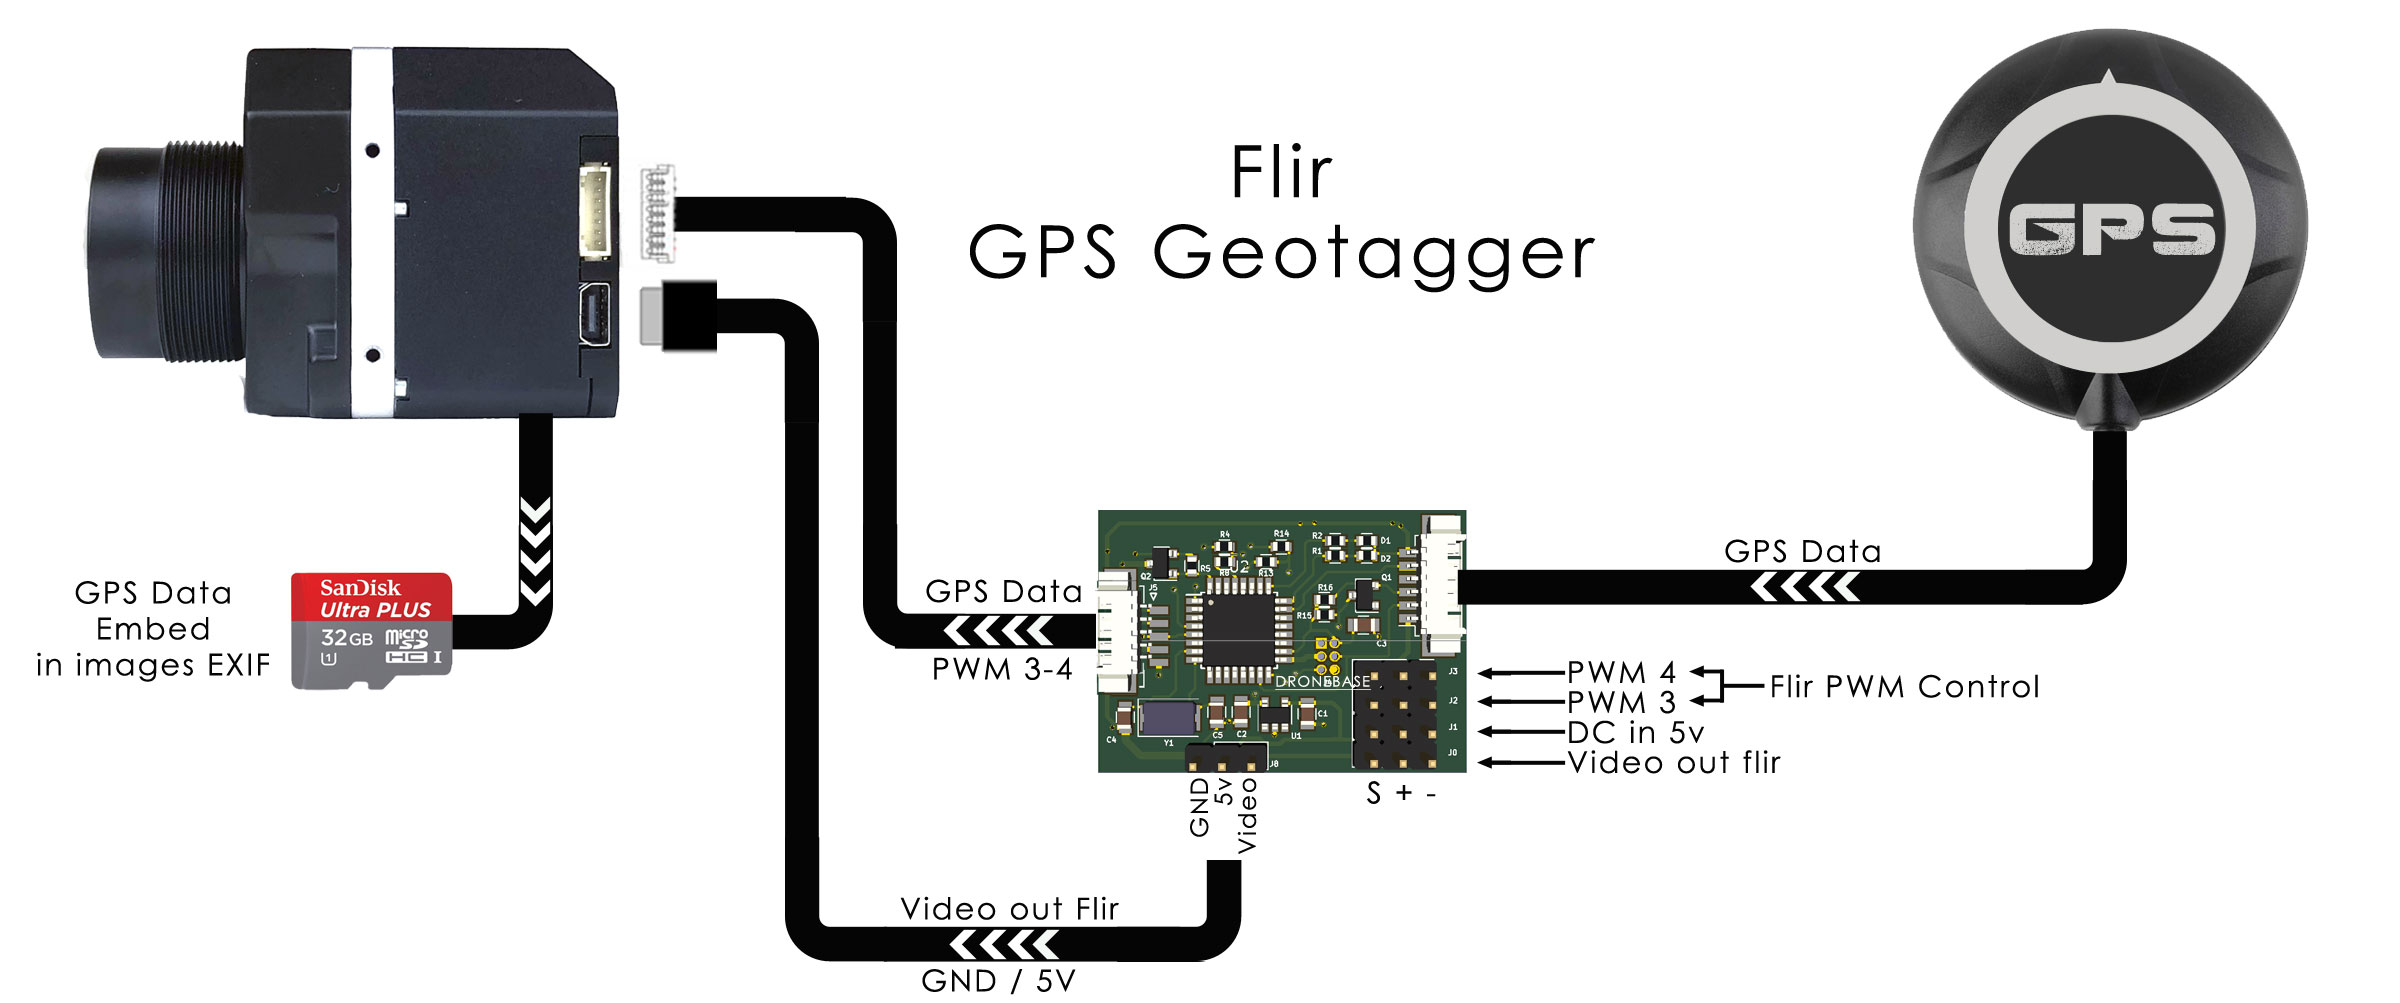 flir gps geotag system for mapping